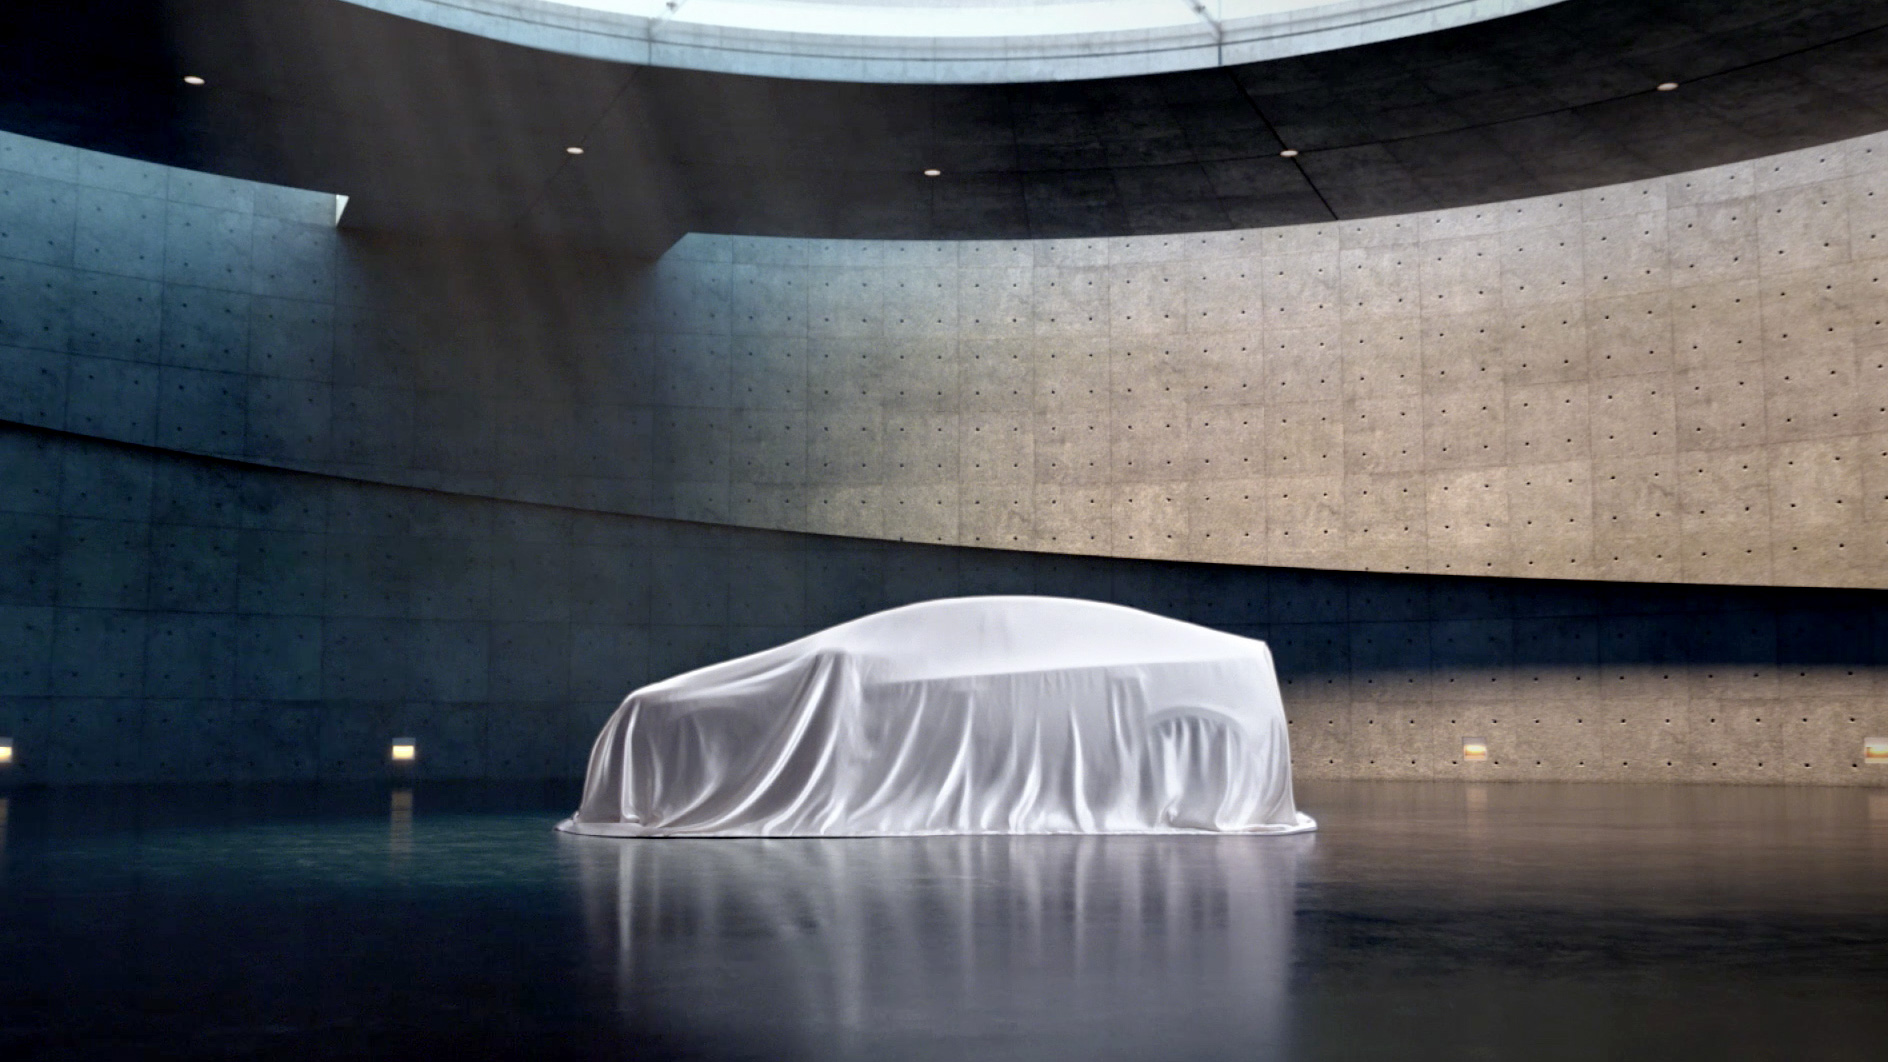 Mercedes-Benz_Reveal.jpg